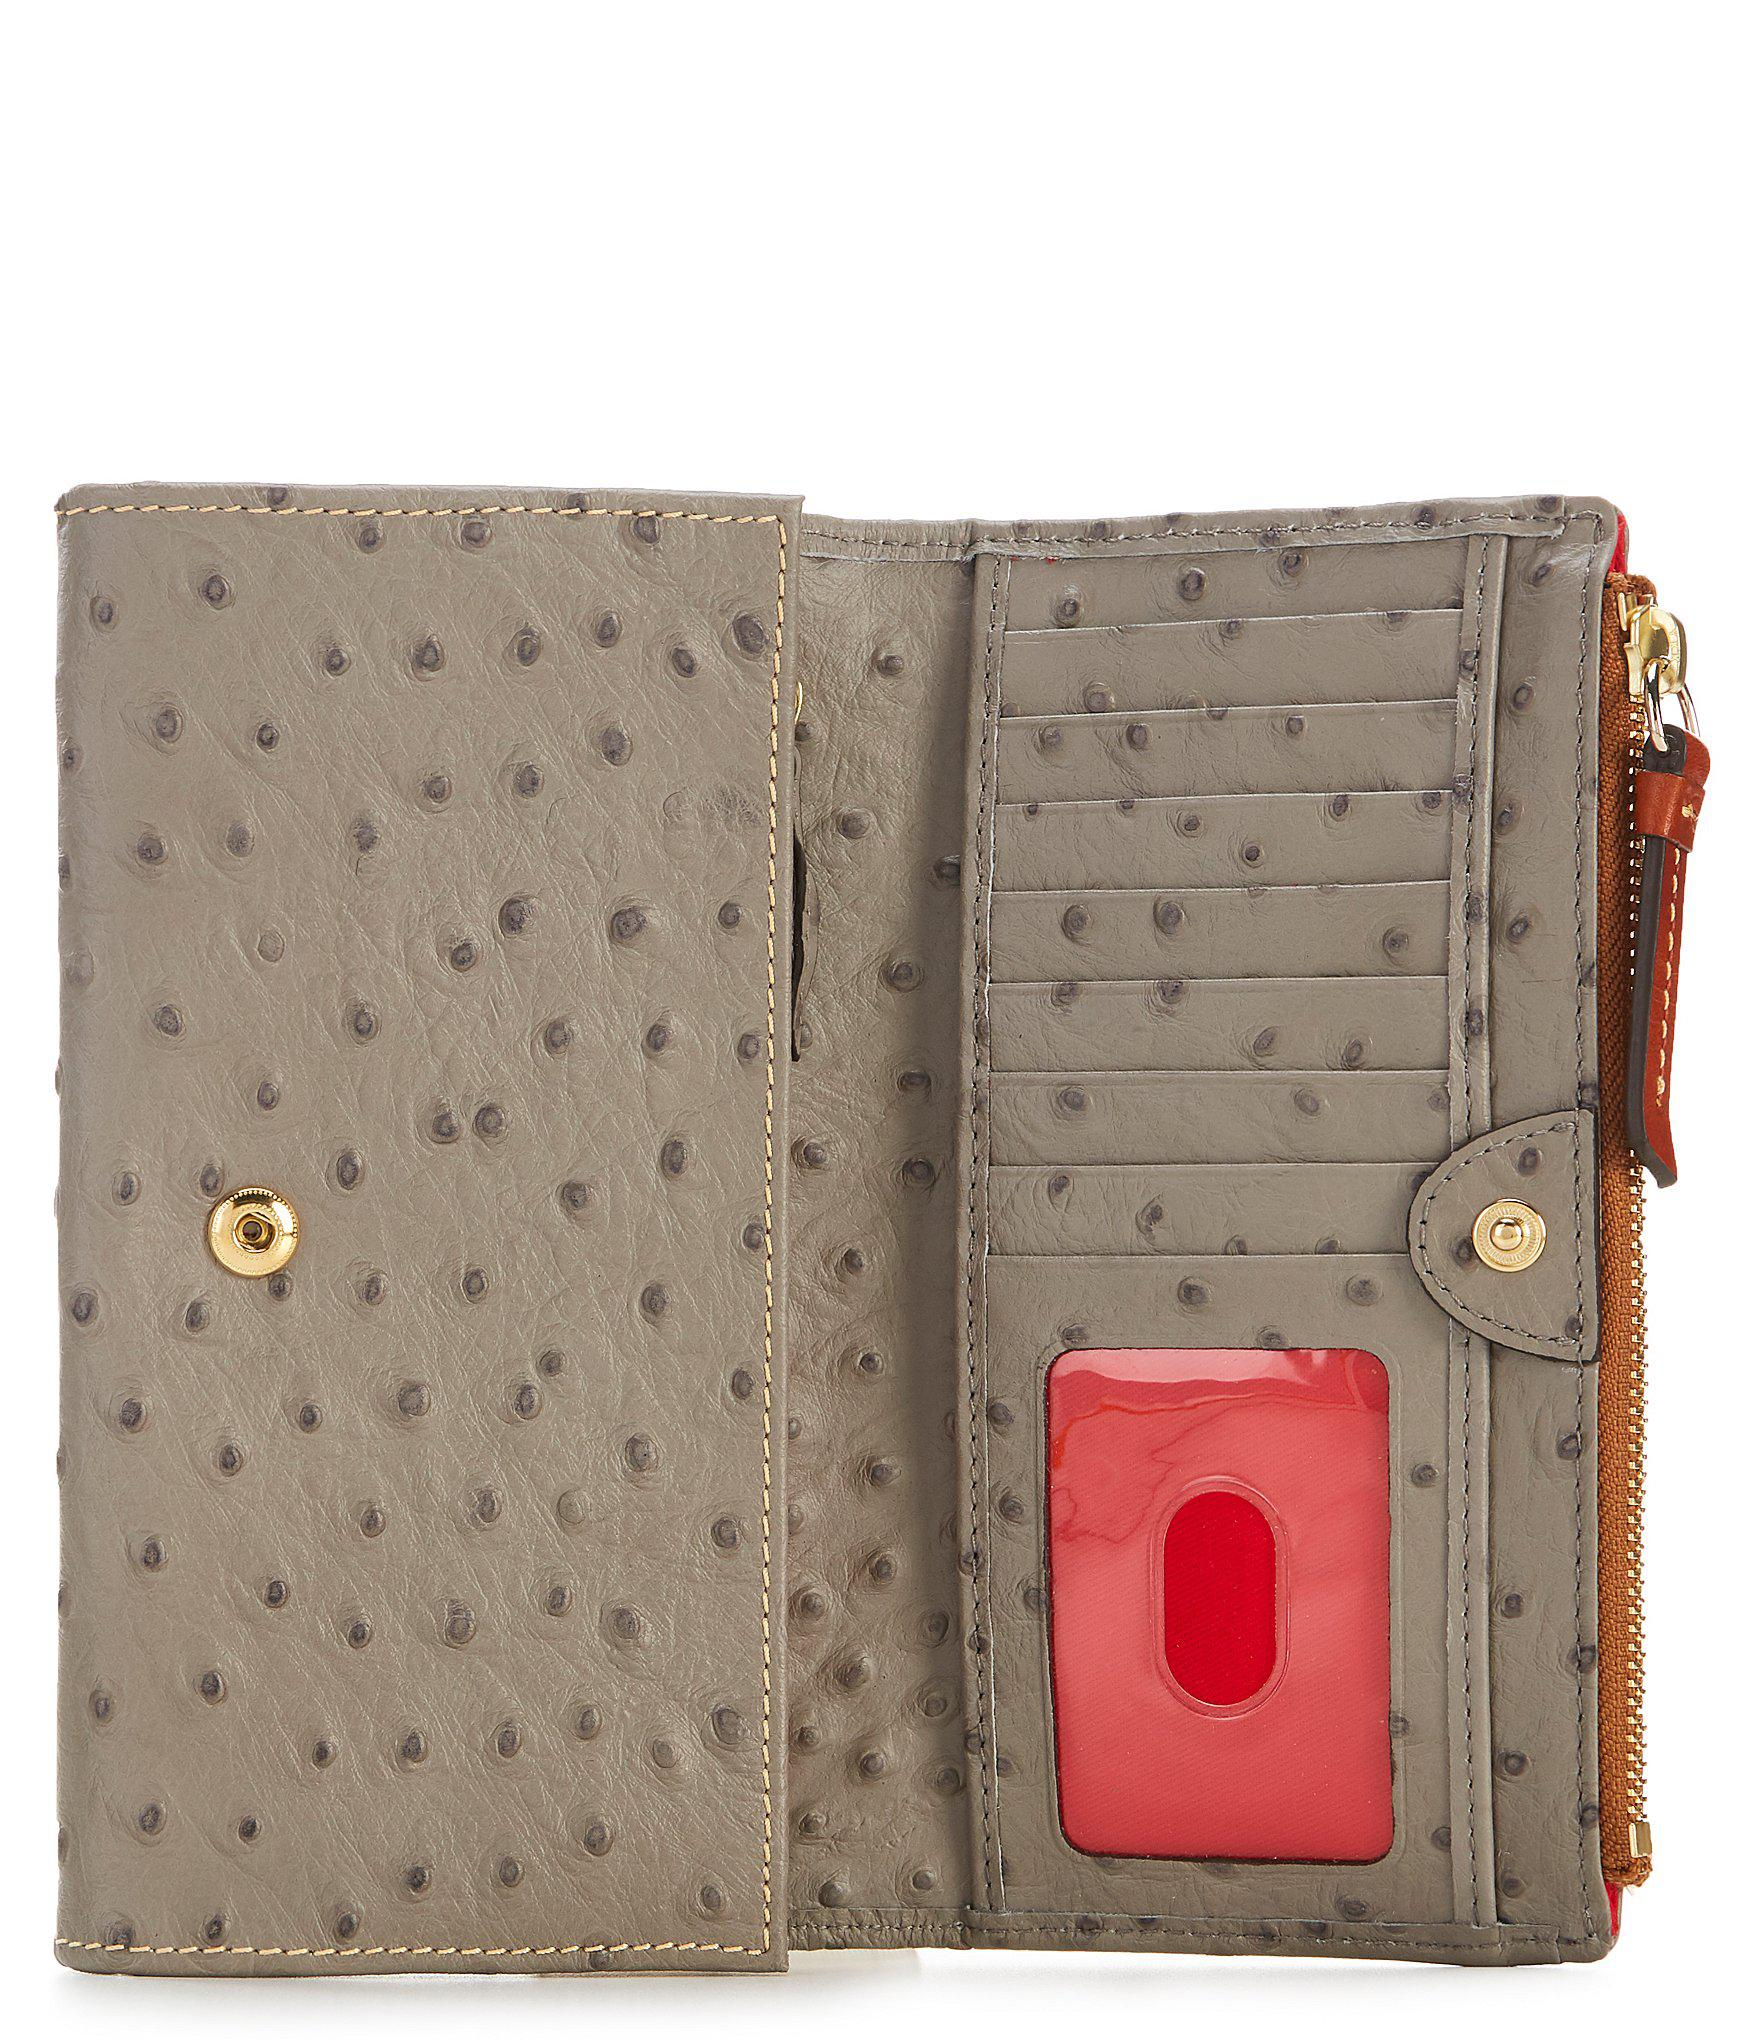 1f69371f146d Lyst - Dooney & Bourke Ostrich Collection Foldover Wallet in Gray